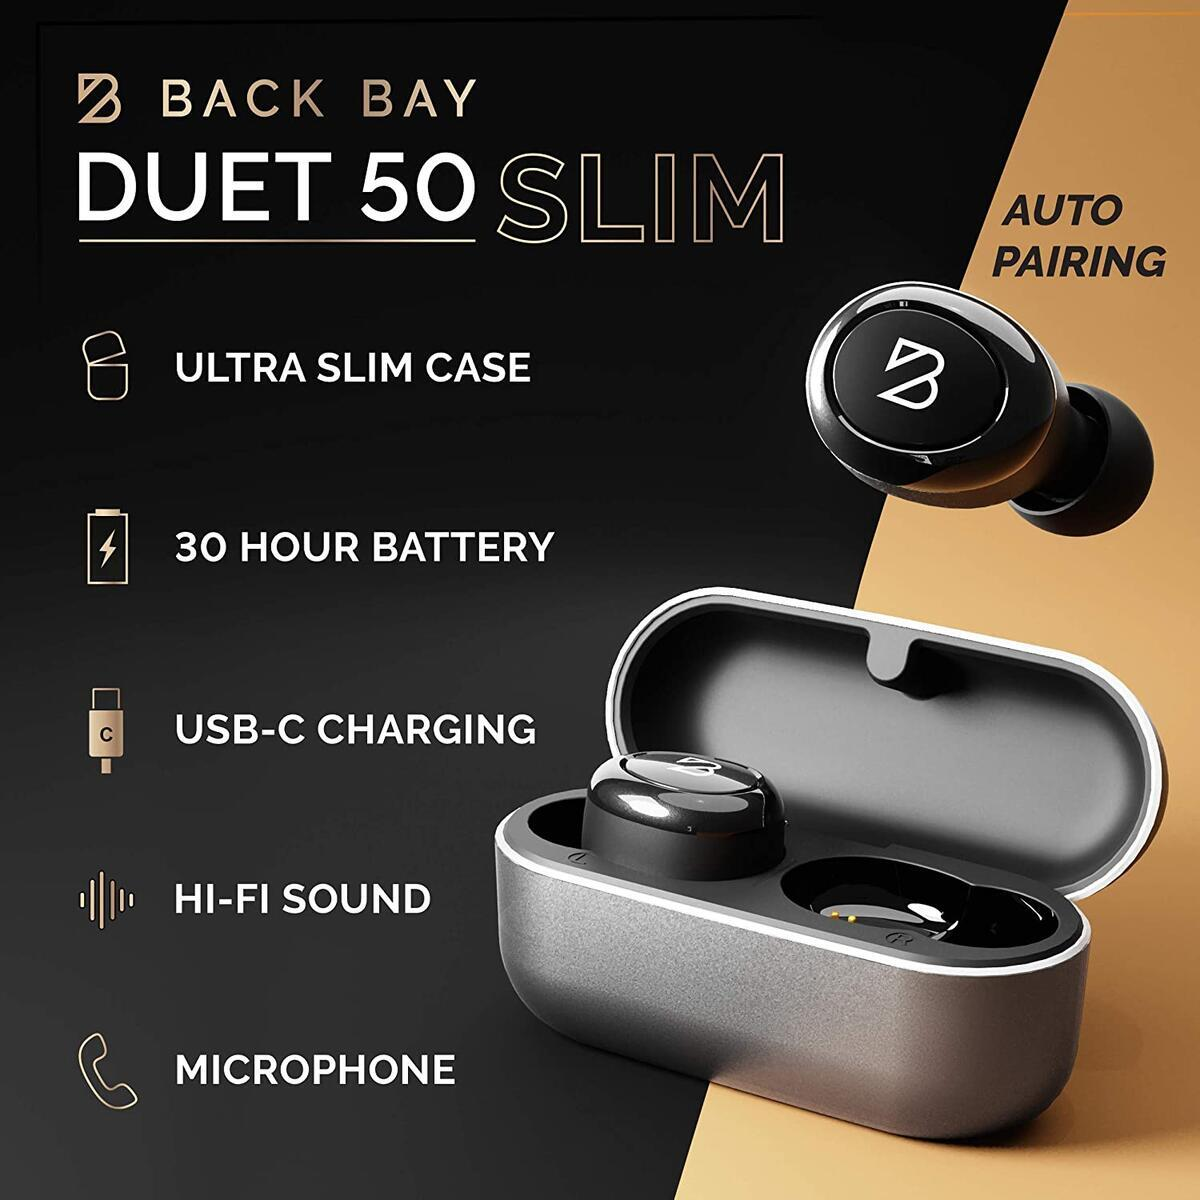 Duet 50 Slim Wireless Earbuds - 30 Hours of Battery Life, Tiny Charging Case, Sweatproof, Truly Wireless